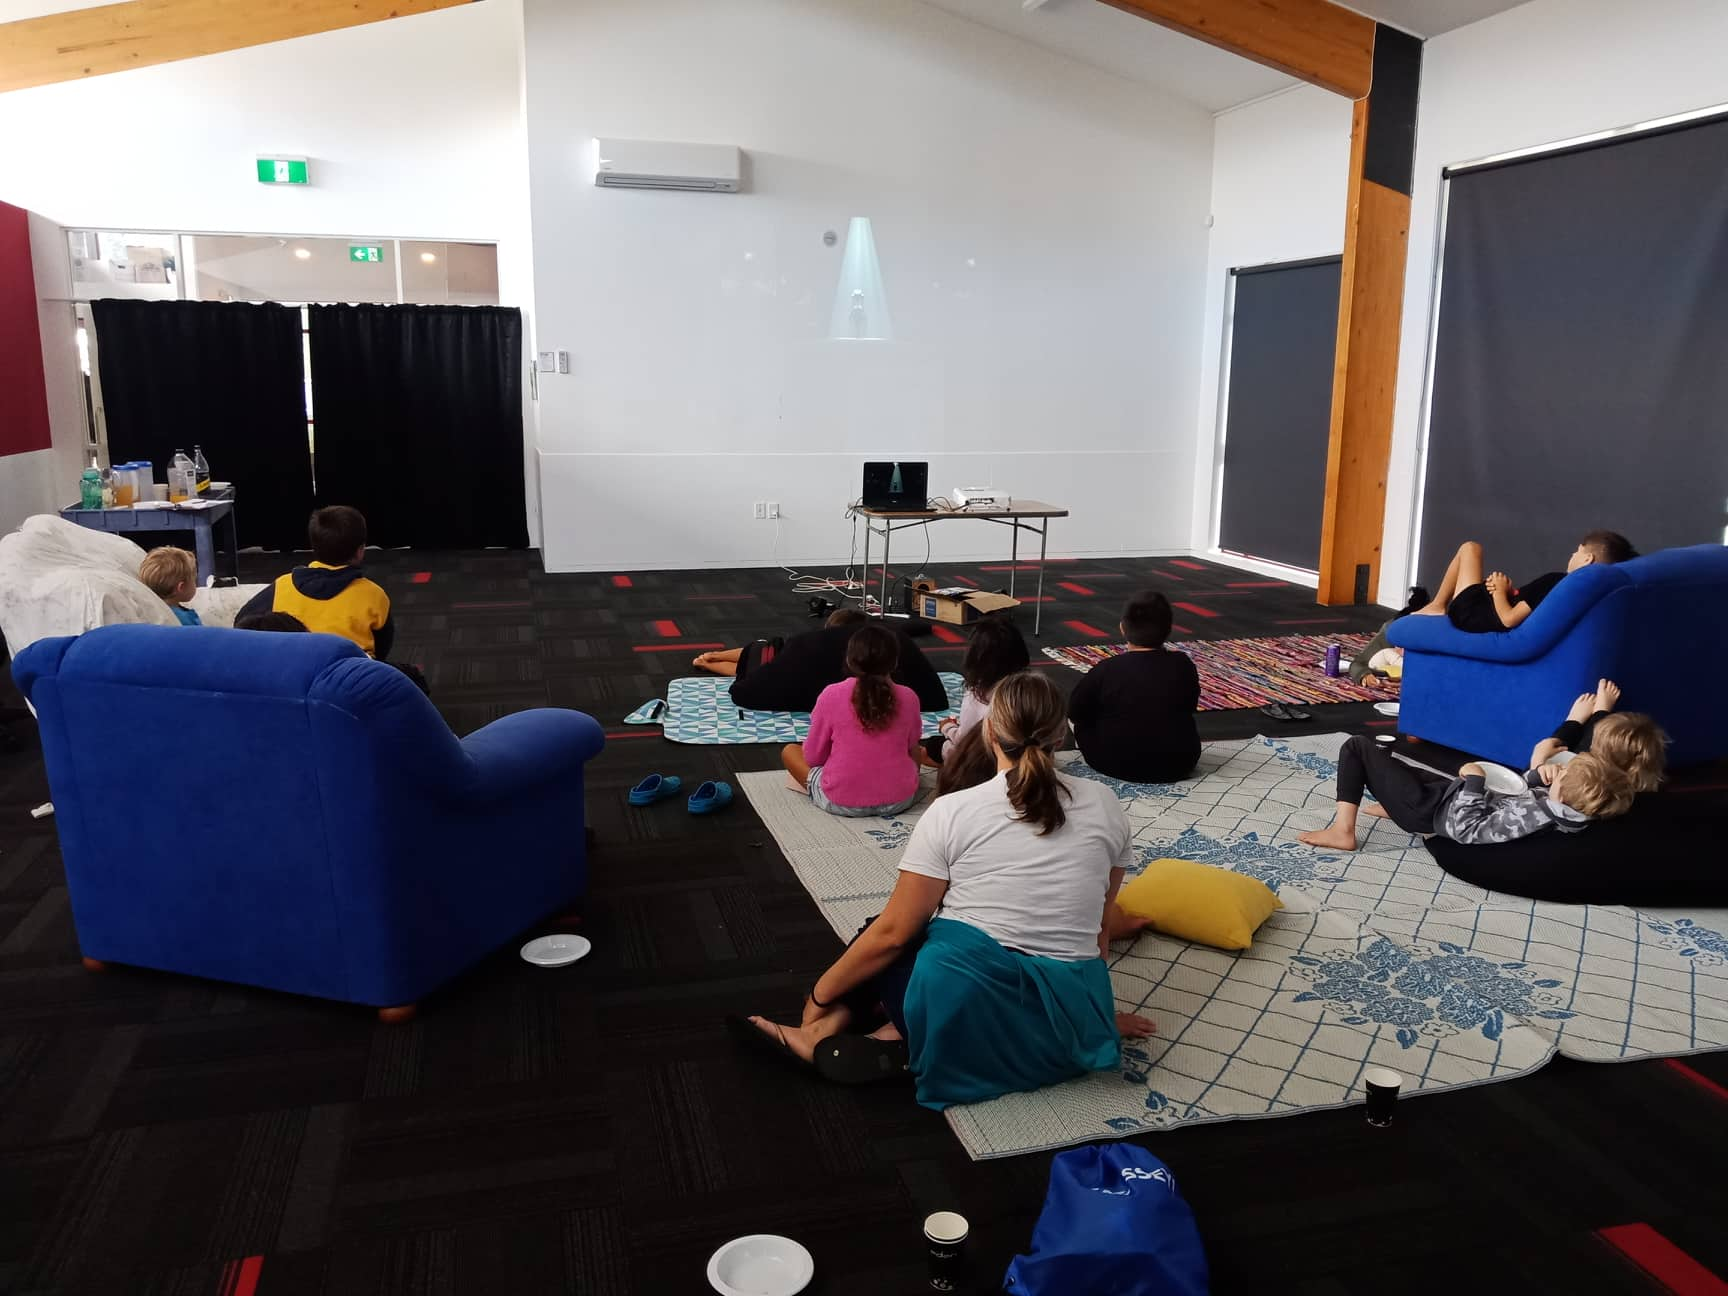 - Movie morning at the Massey Hub. The kids watched MNadagascar 3.